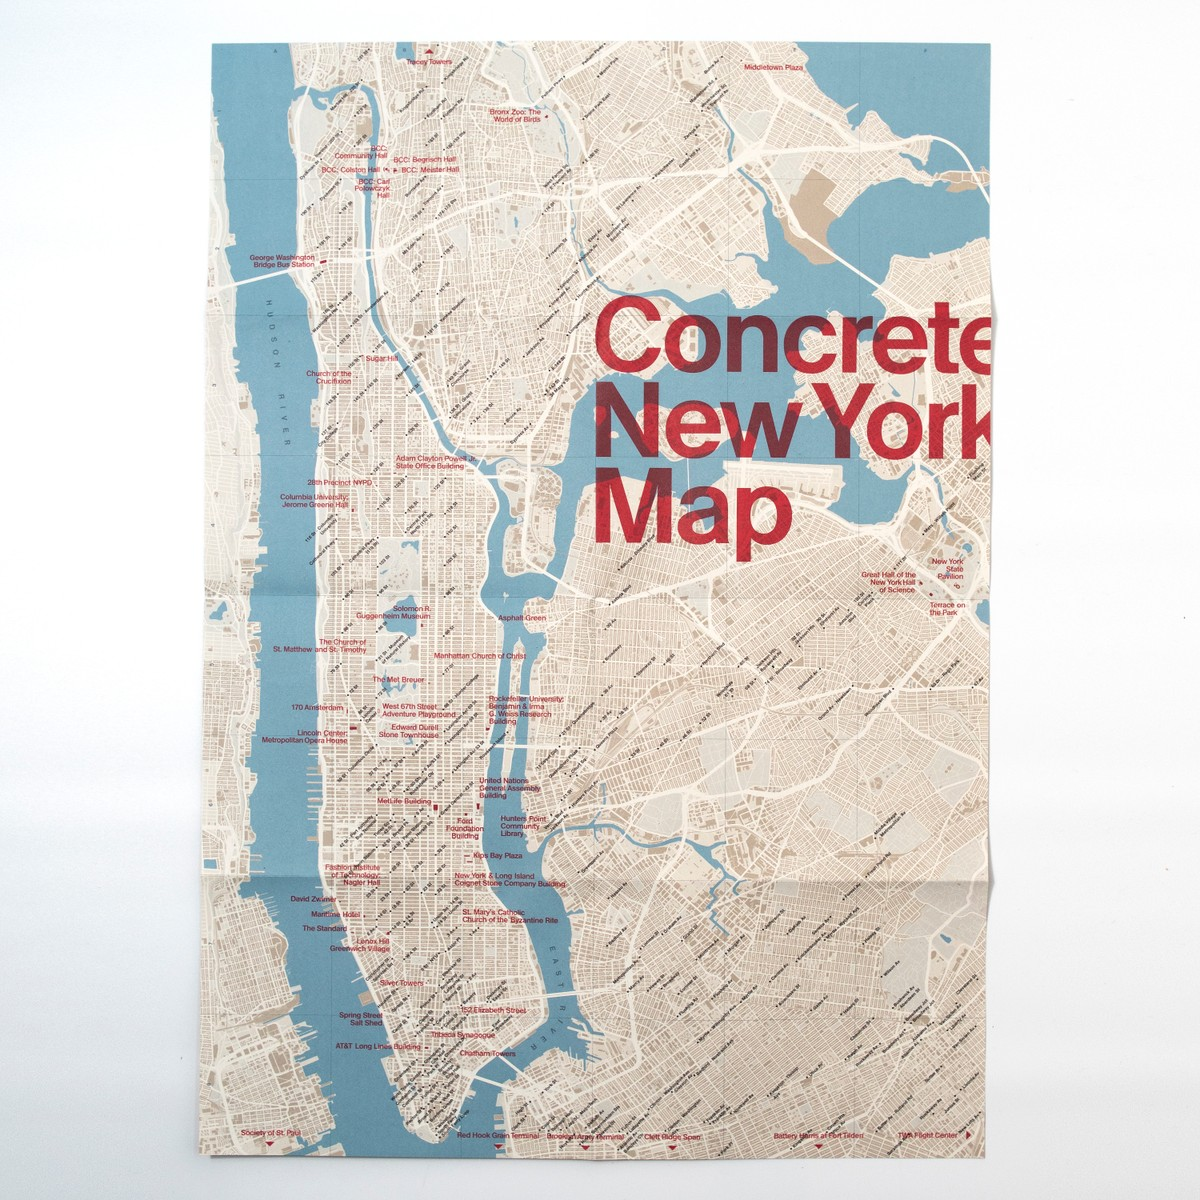 Photo of Concrete New York Map